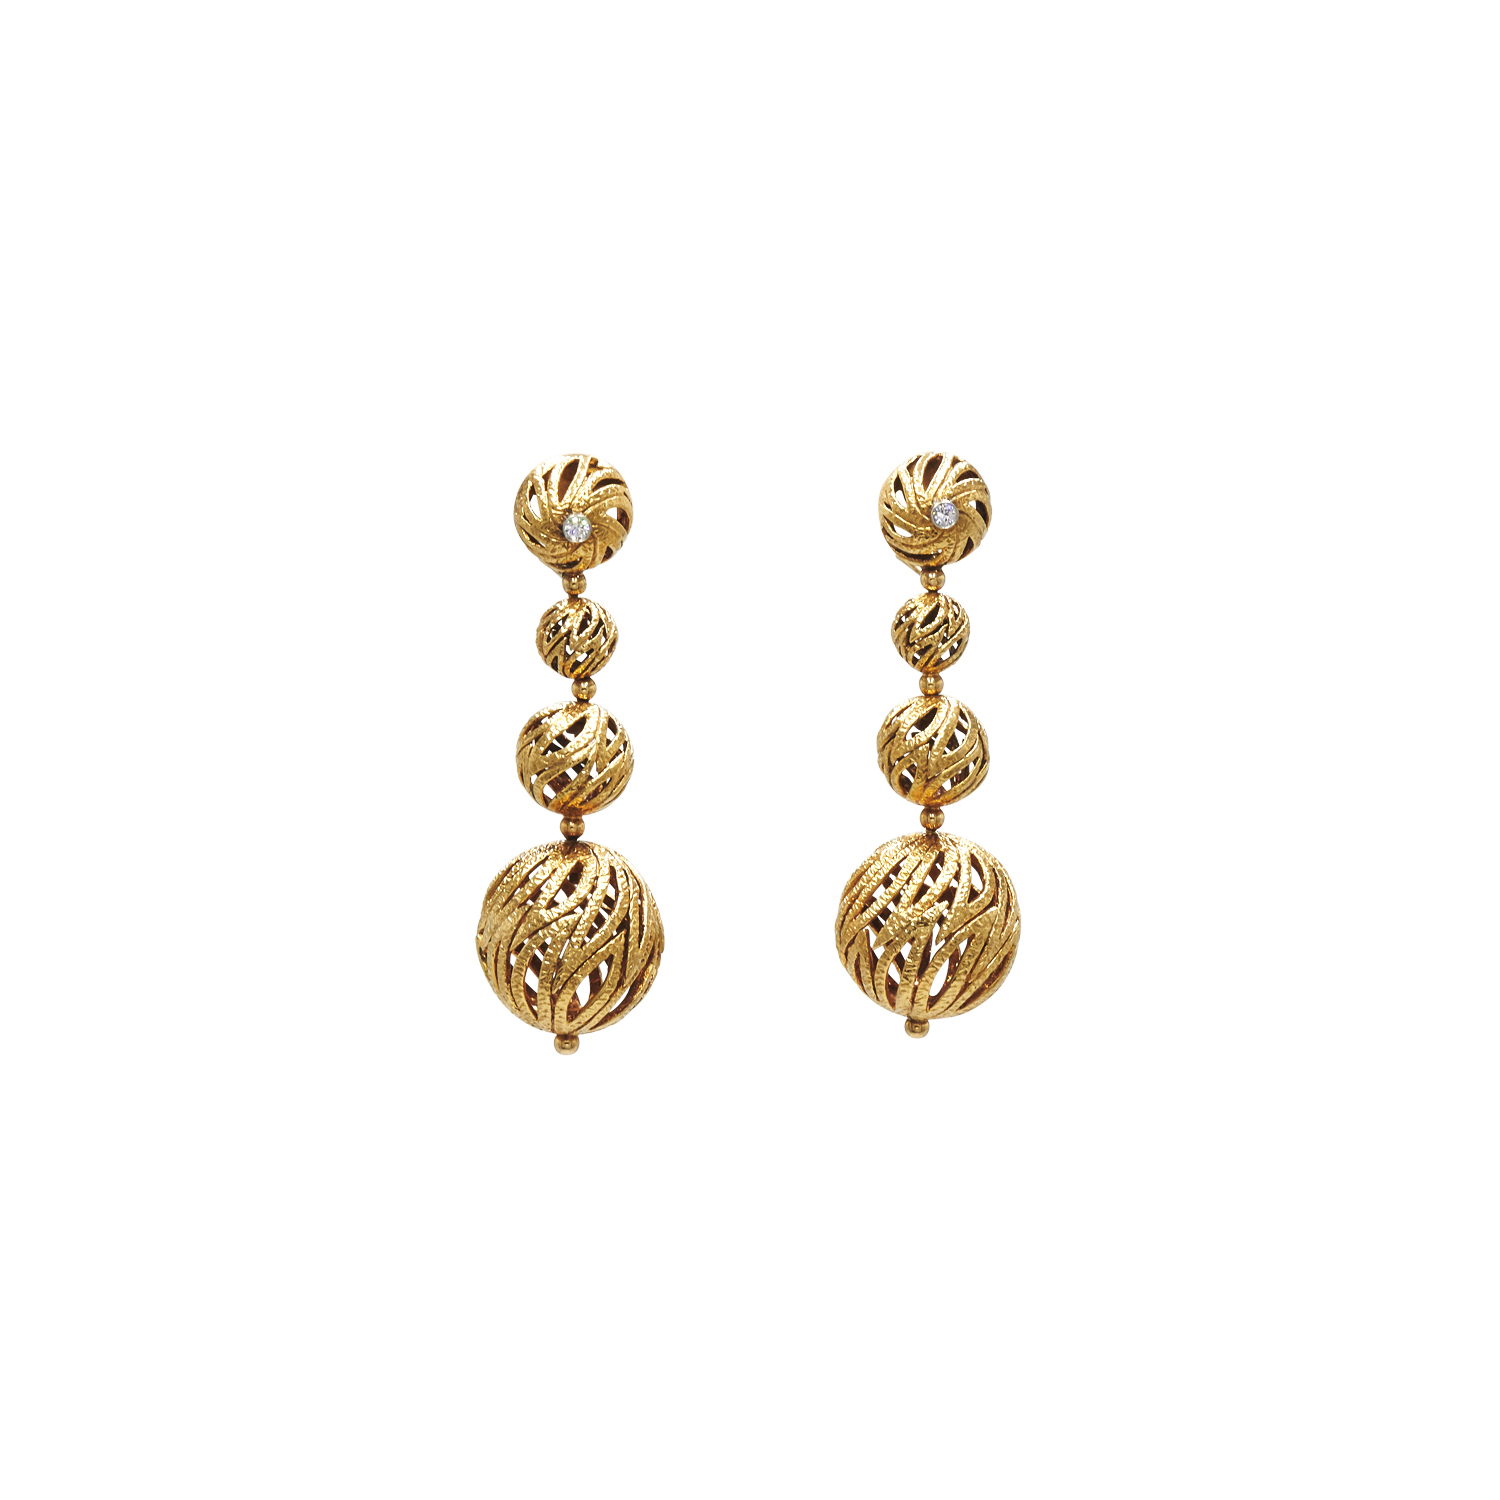 18K Yellow Gold Textured Openwork Ball Pendant Earrings by Van Cleef & Arpels Style E-41606-FL-0-0